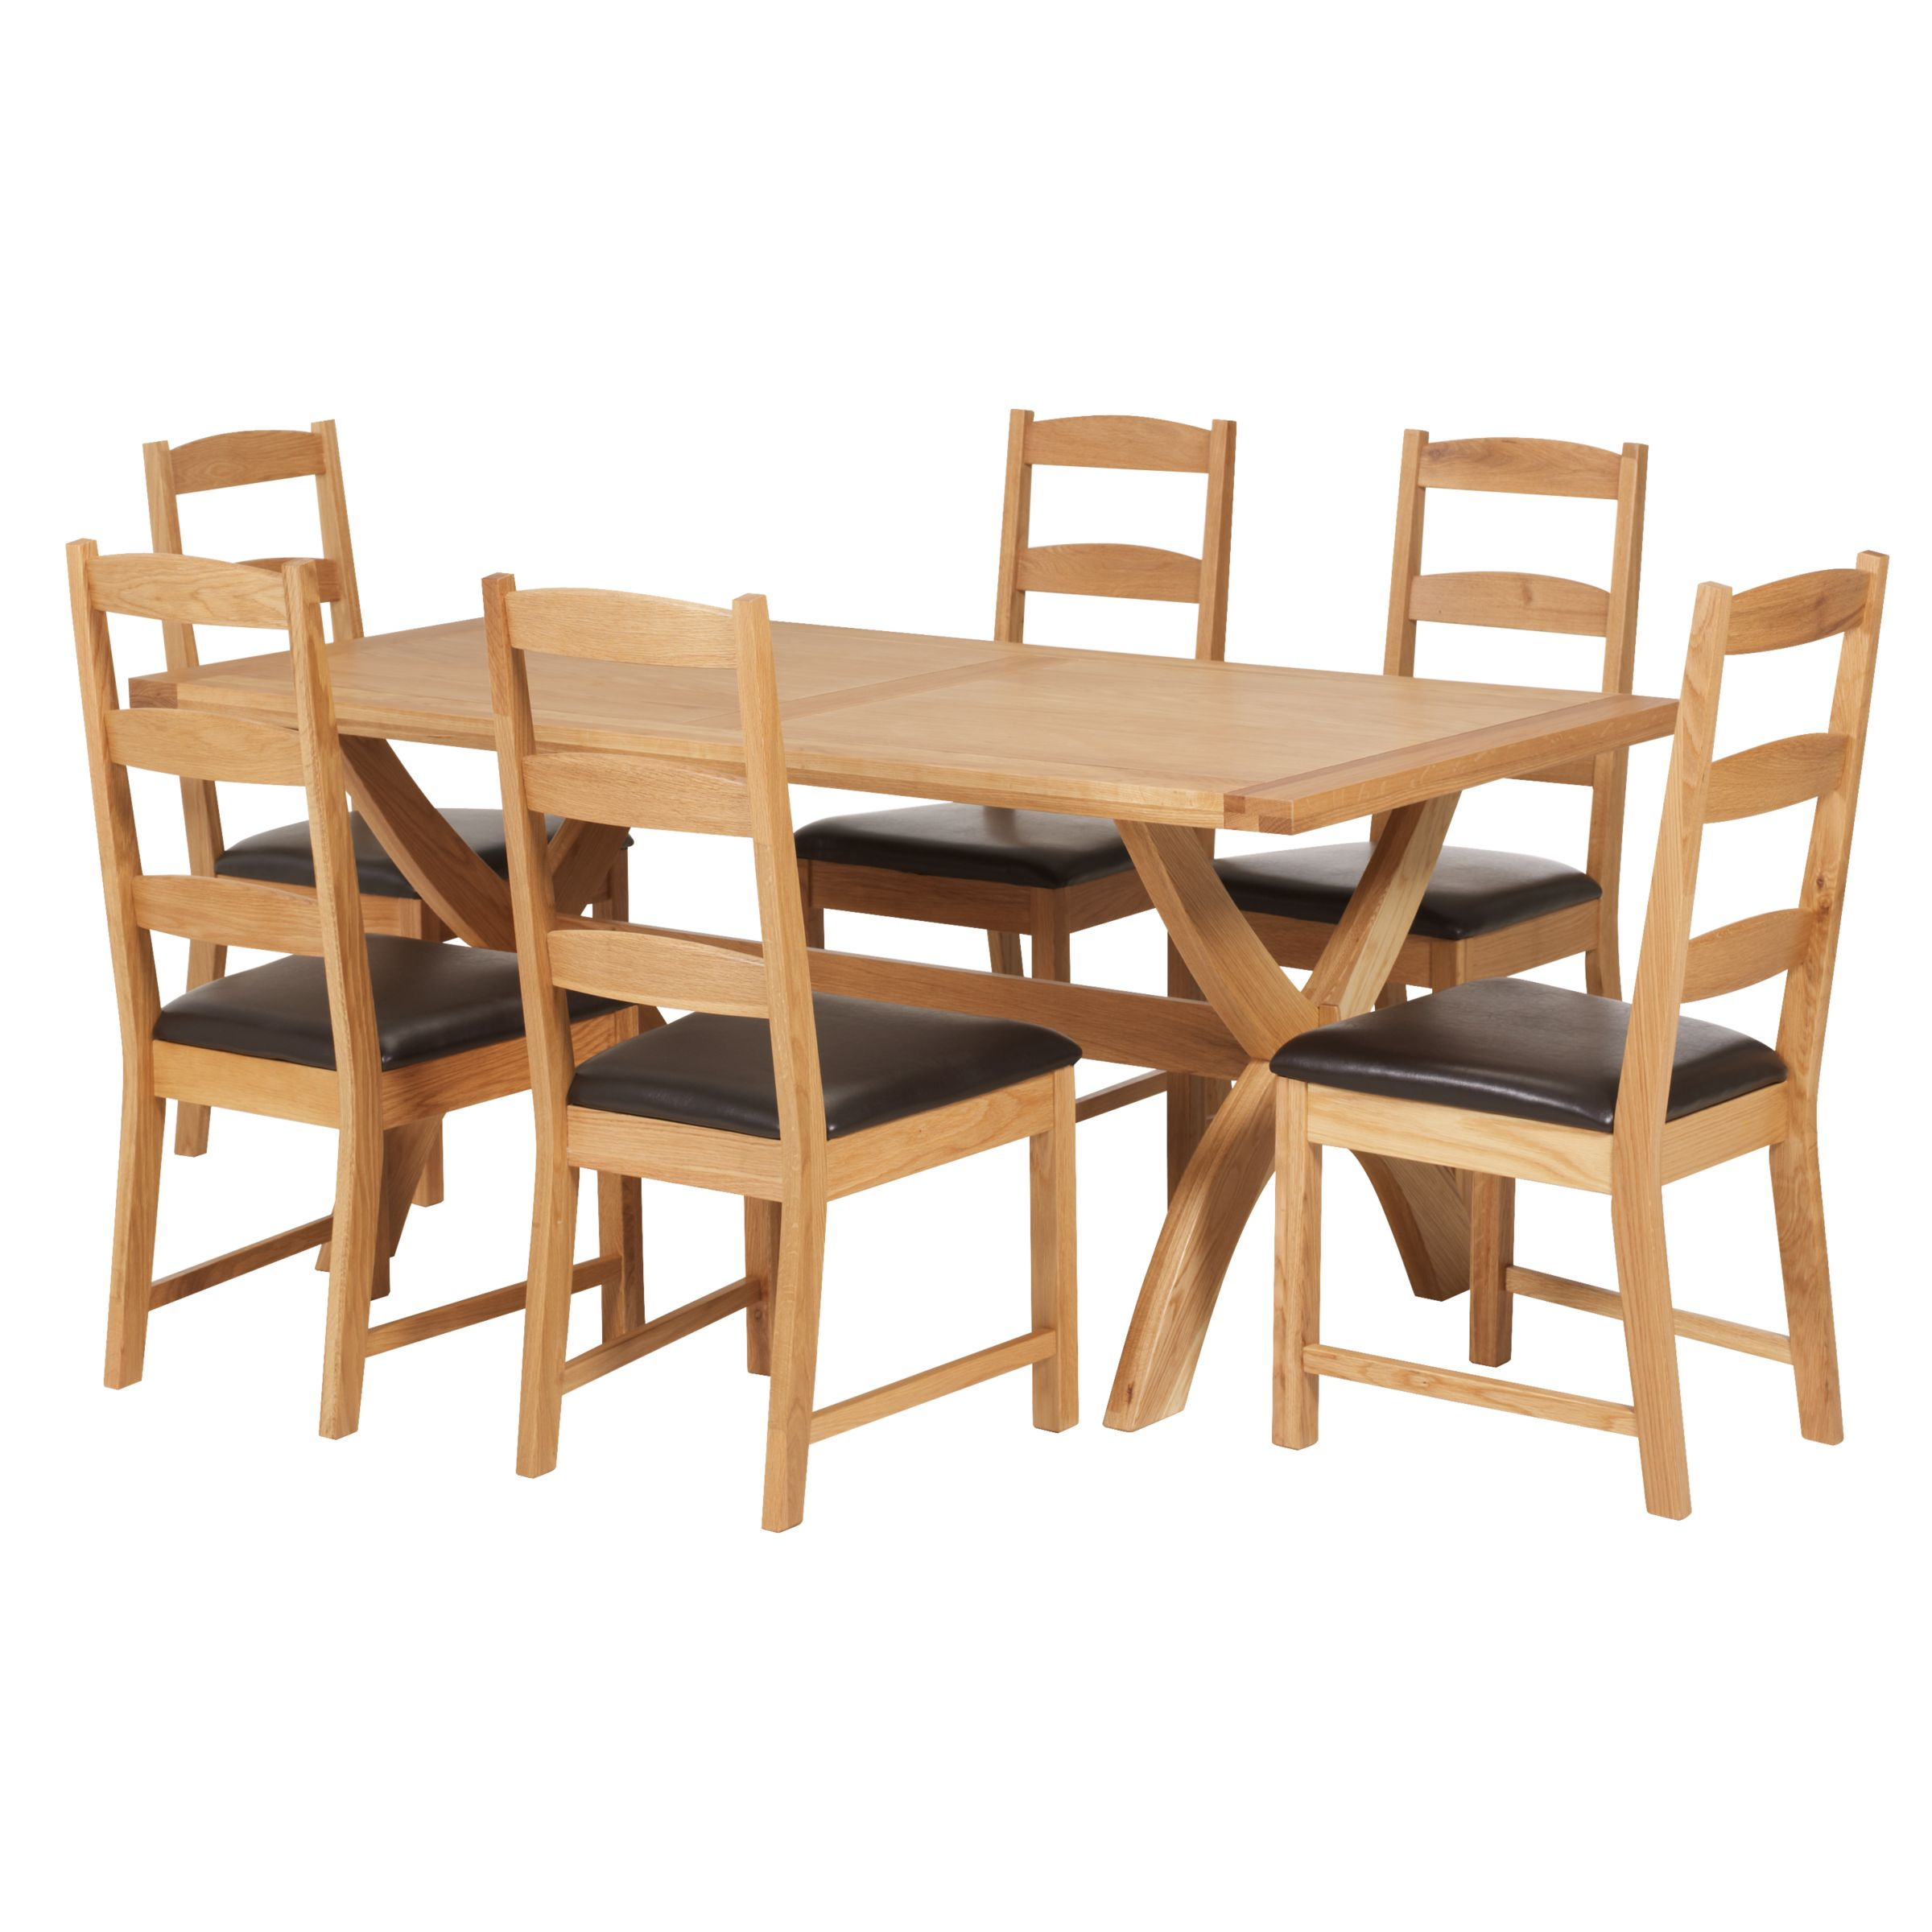 john lewis tables and chairs : 230724134 from www.comparestoreprices.co.uk size 2400 x 2400 jpeg 271kB